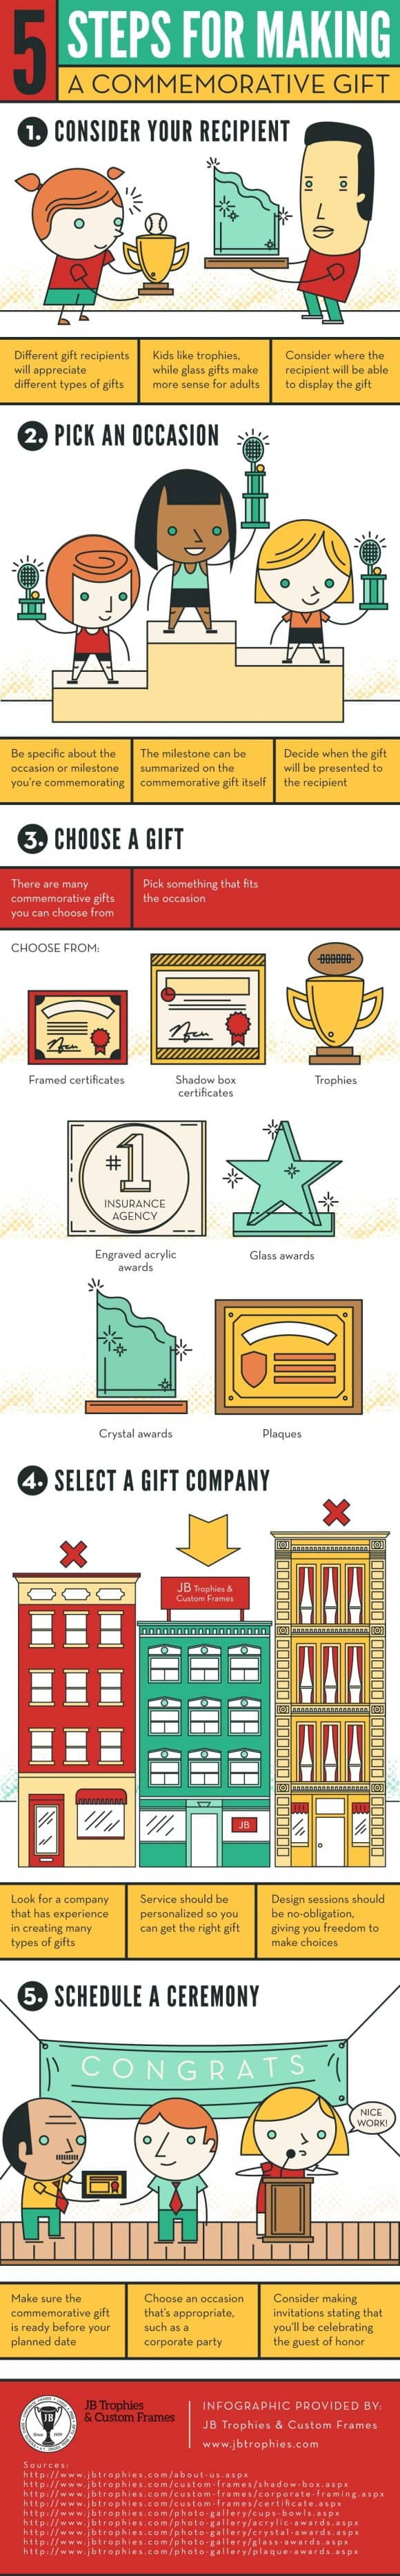 Personalized Gifts in Santa Clara and San Jose